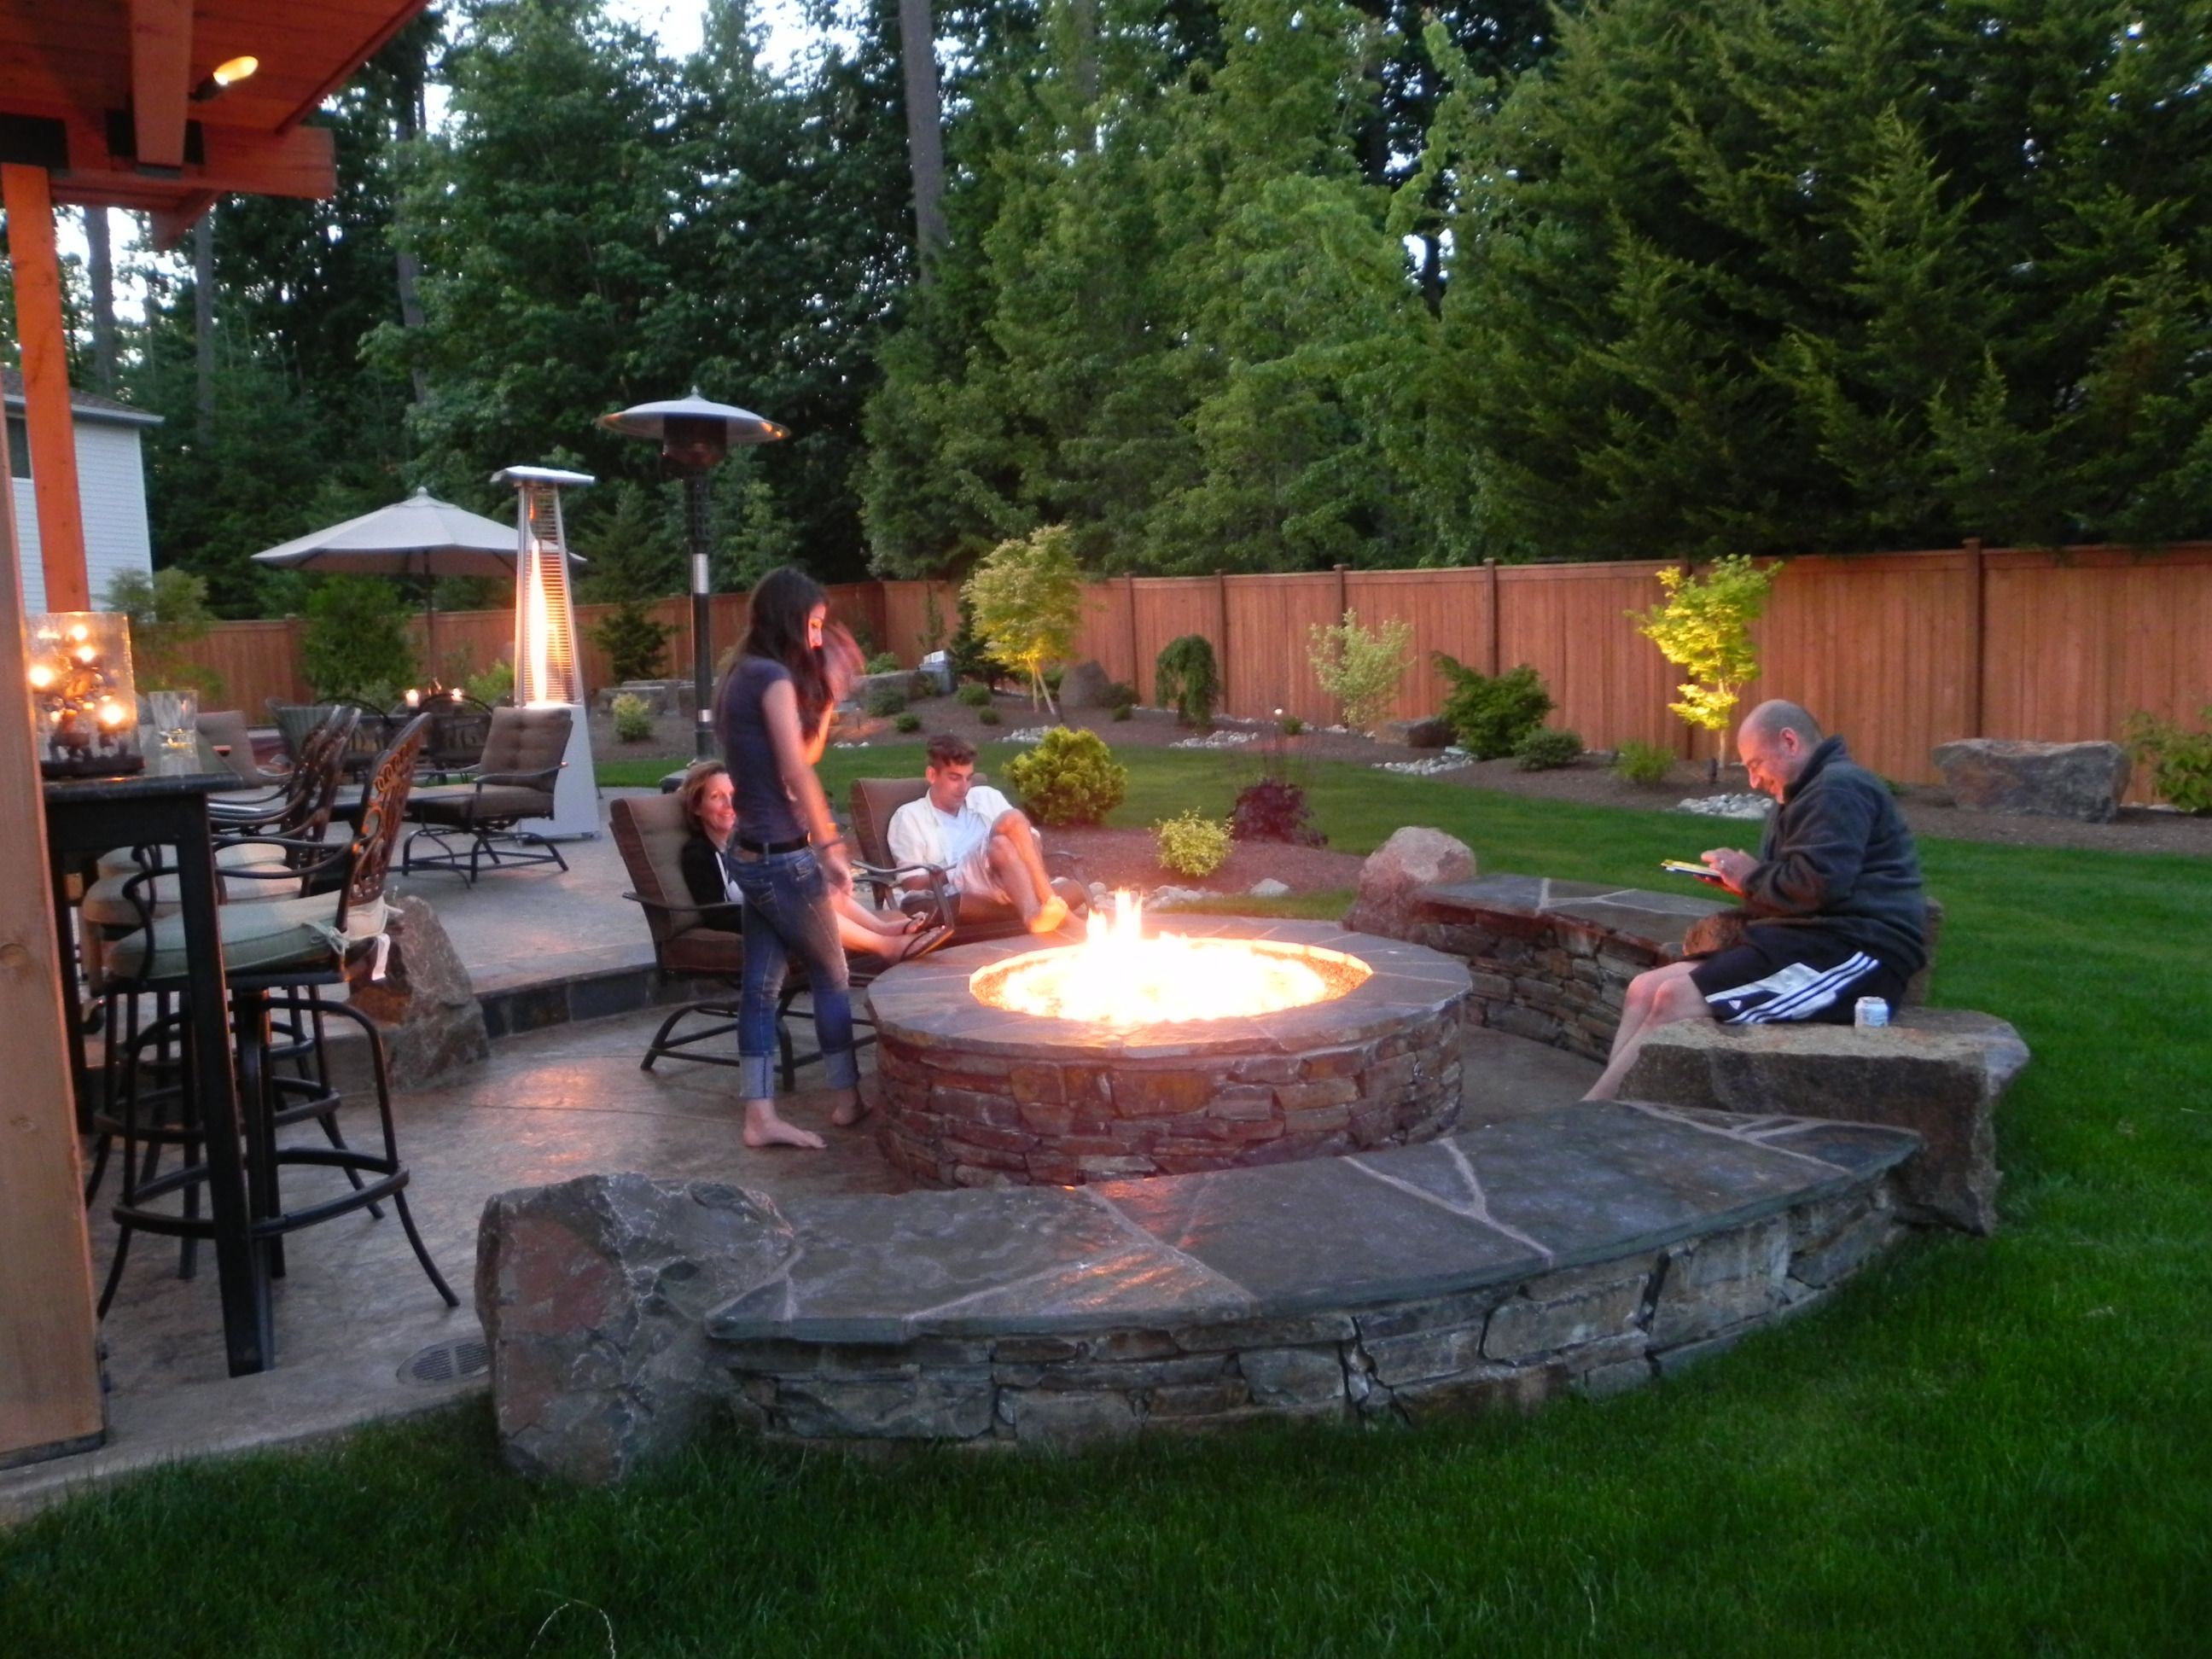 Fire Pit Design Ideas paris hiltons old stomping grounds Landscape Design In Sammamish Sublime Garden Design Landscape Design Landscape Architecture Serving Backyard Fire Pitsoutdoor